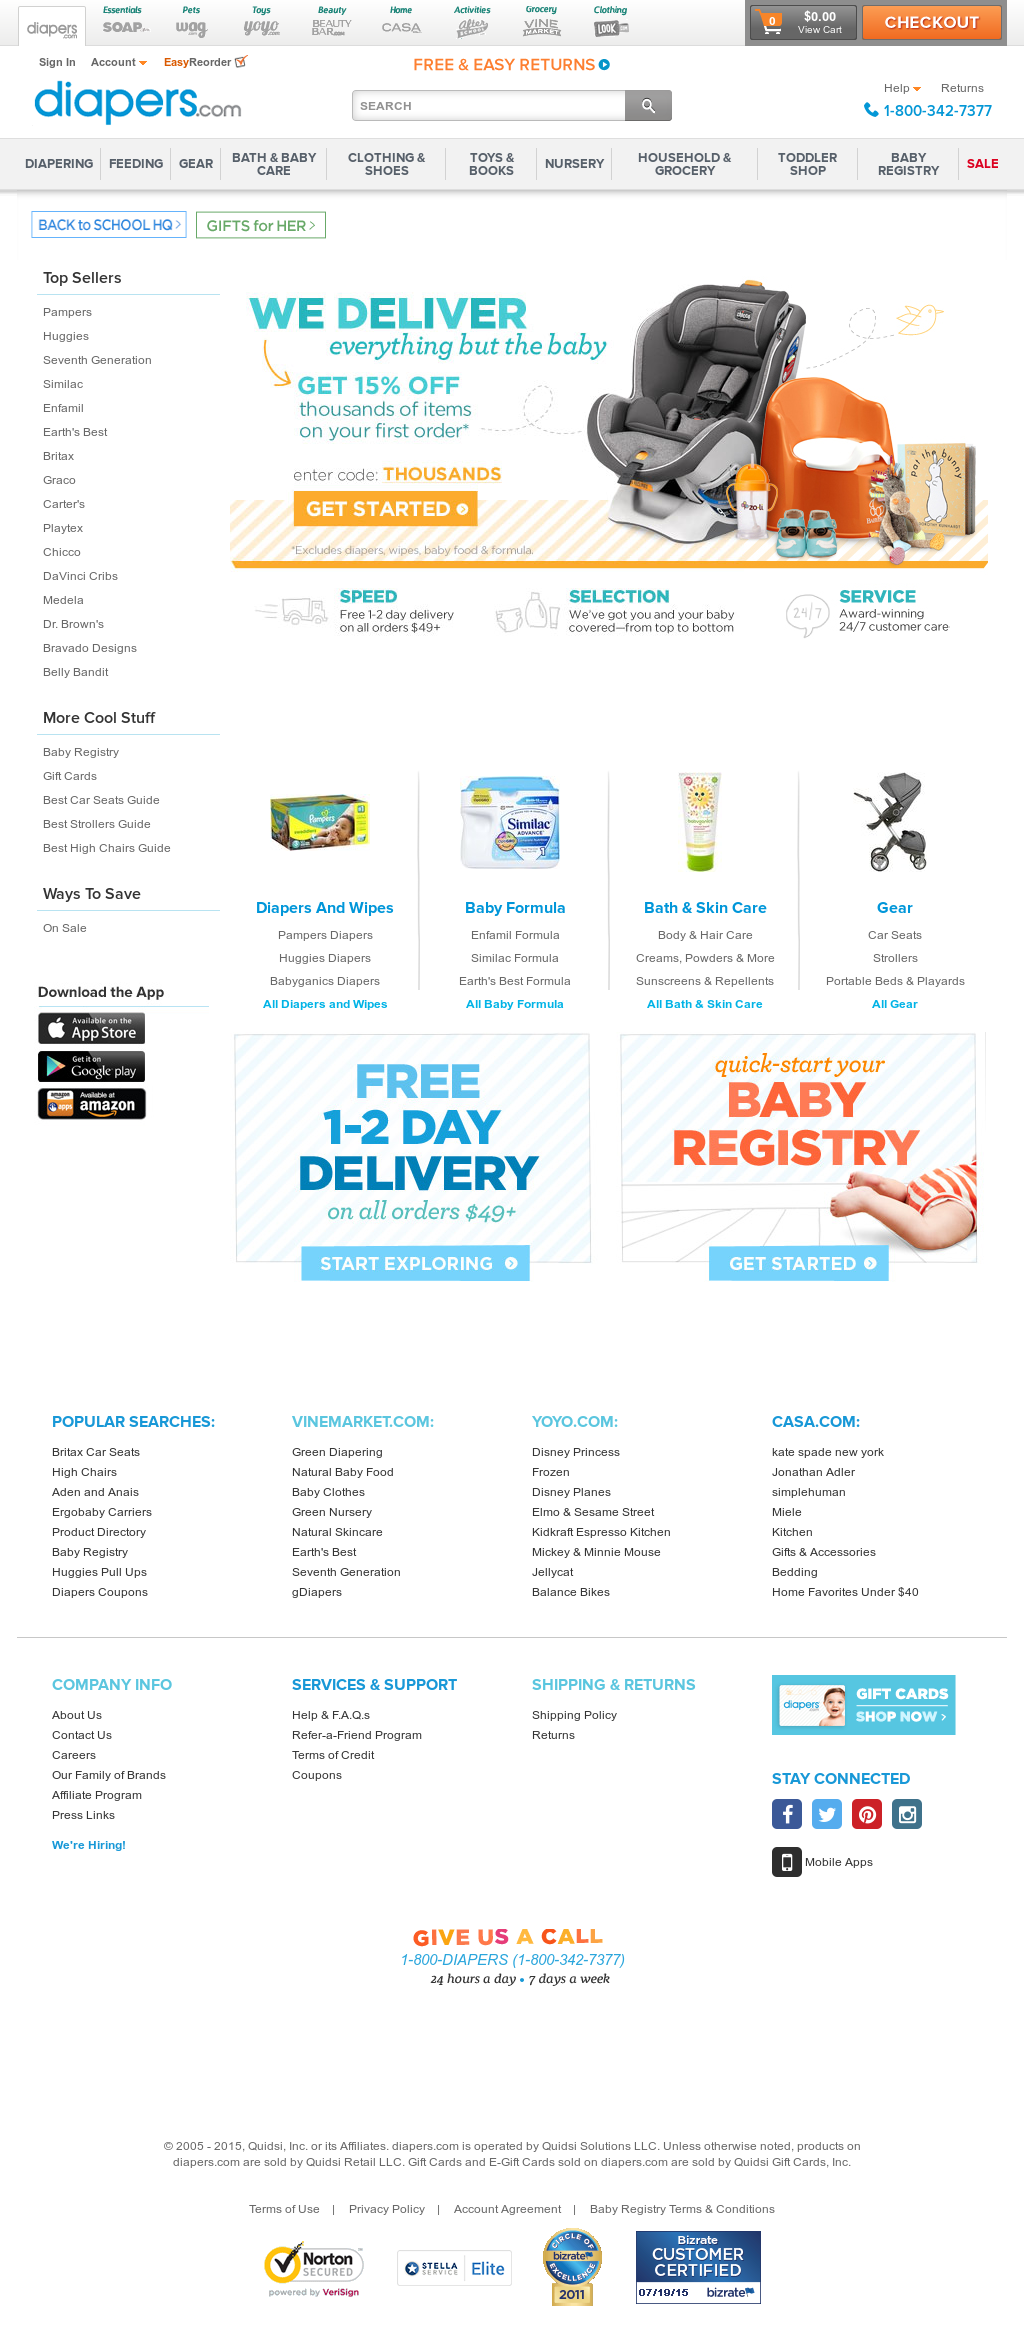 Diapers company profile owler for 10 exchange place 25th floor jersey city nj 07302